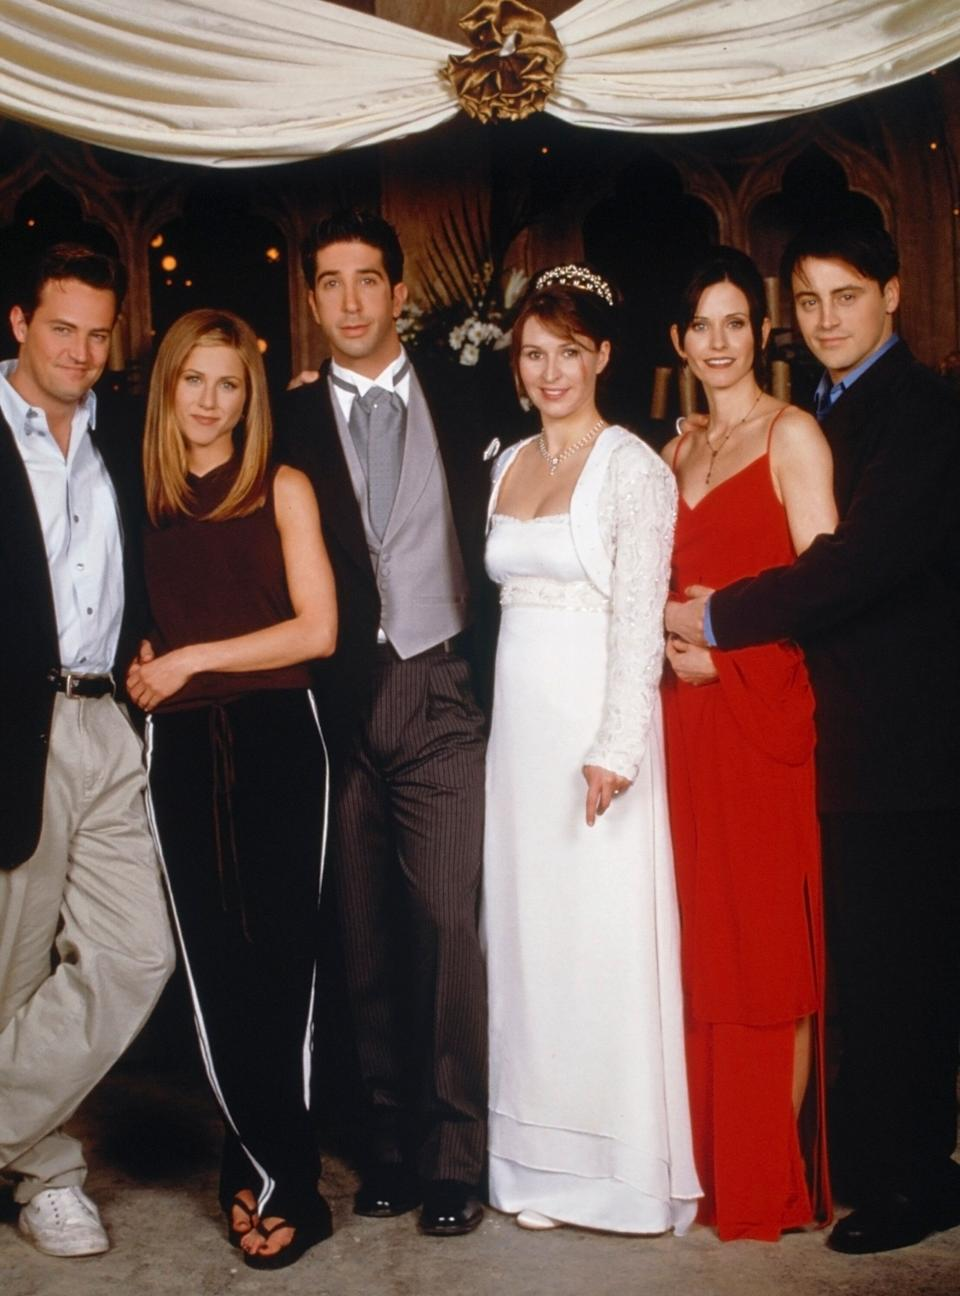 The Friends cast relocated to London to film Ross and Emily's wedding in 1998 (Photo: NBC via Getty Images)